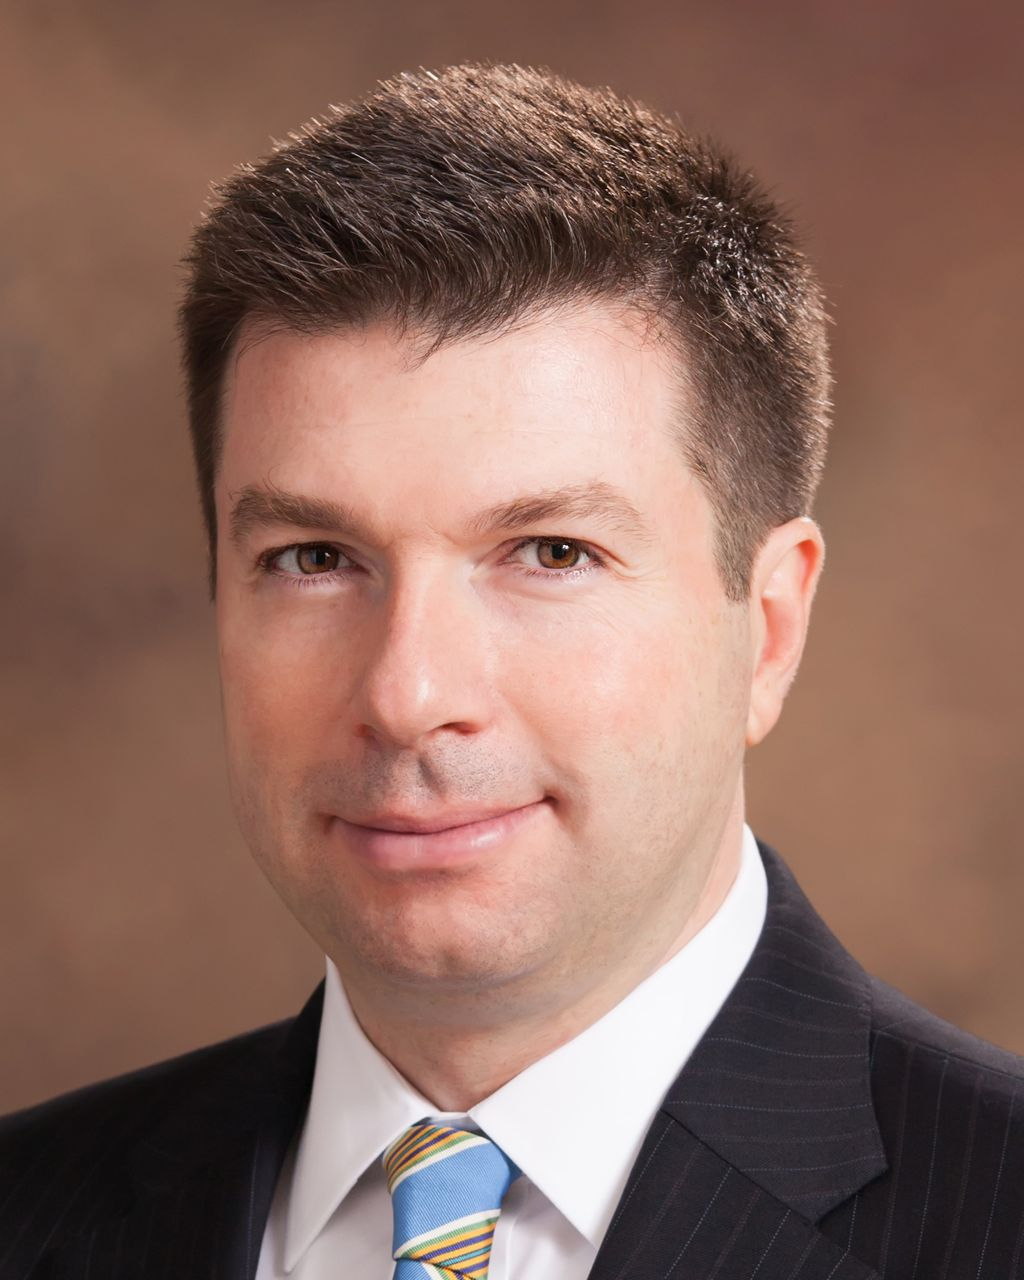 Patrick Cote, financial advisor Watertown MA